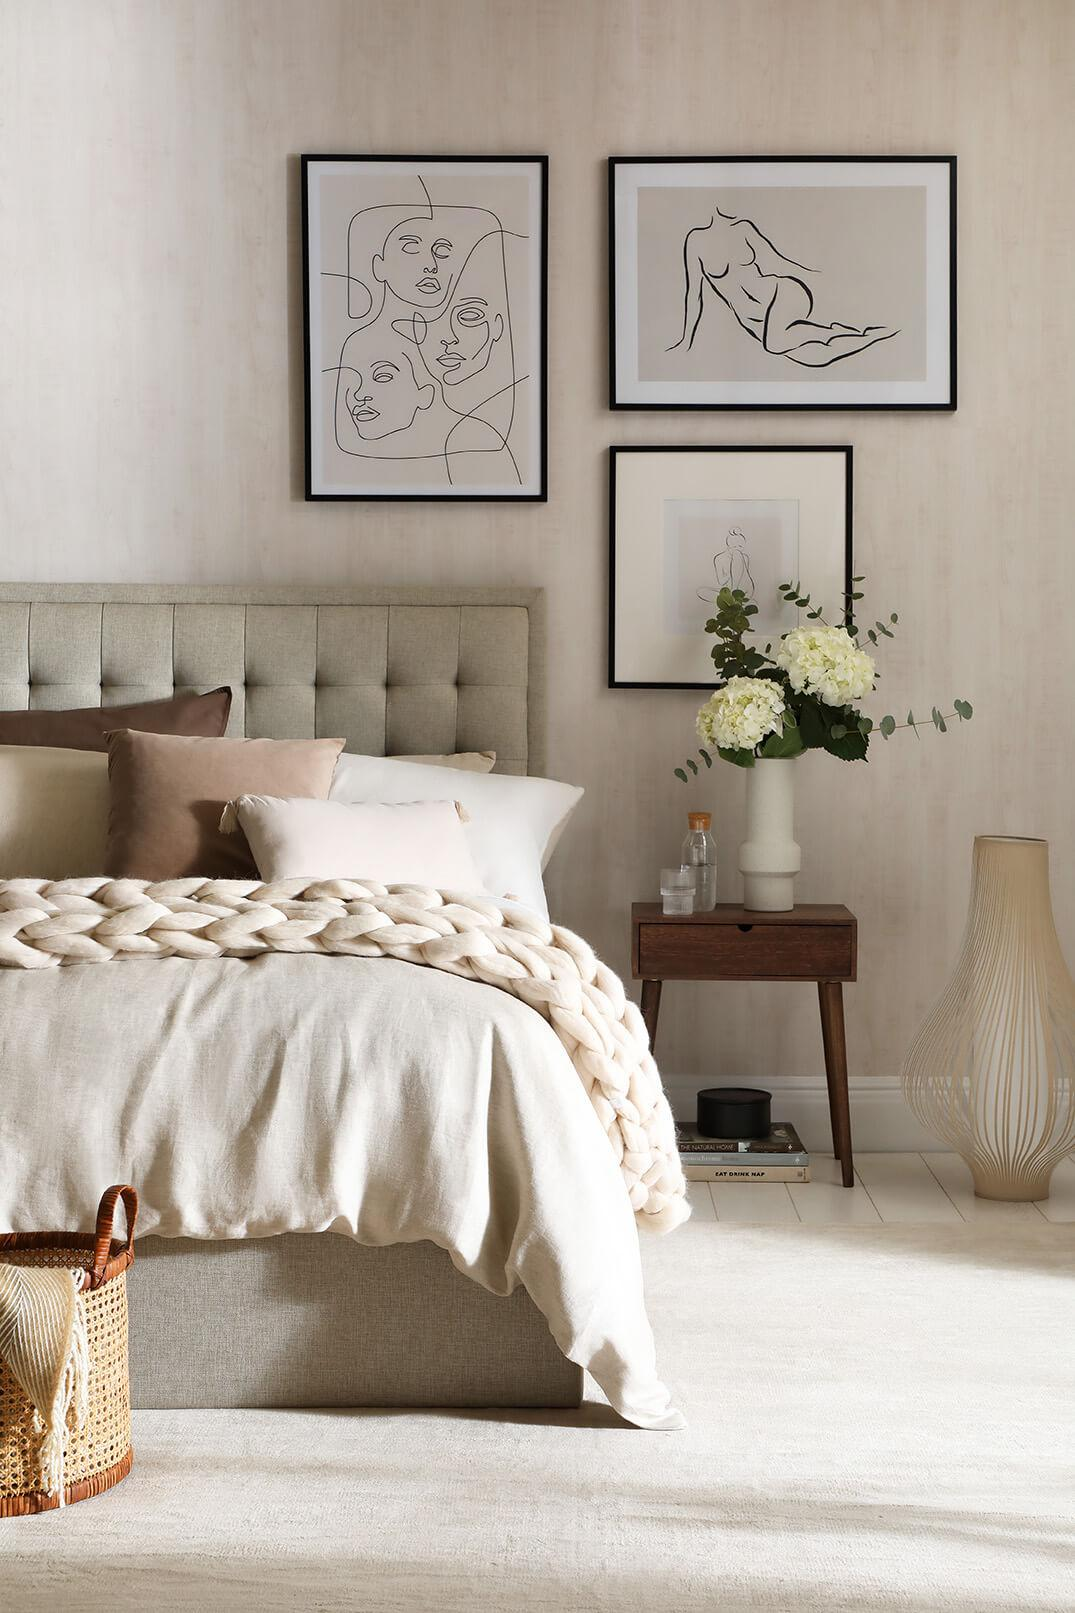 Cream tones are classy and comforting in the bedroom.